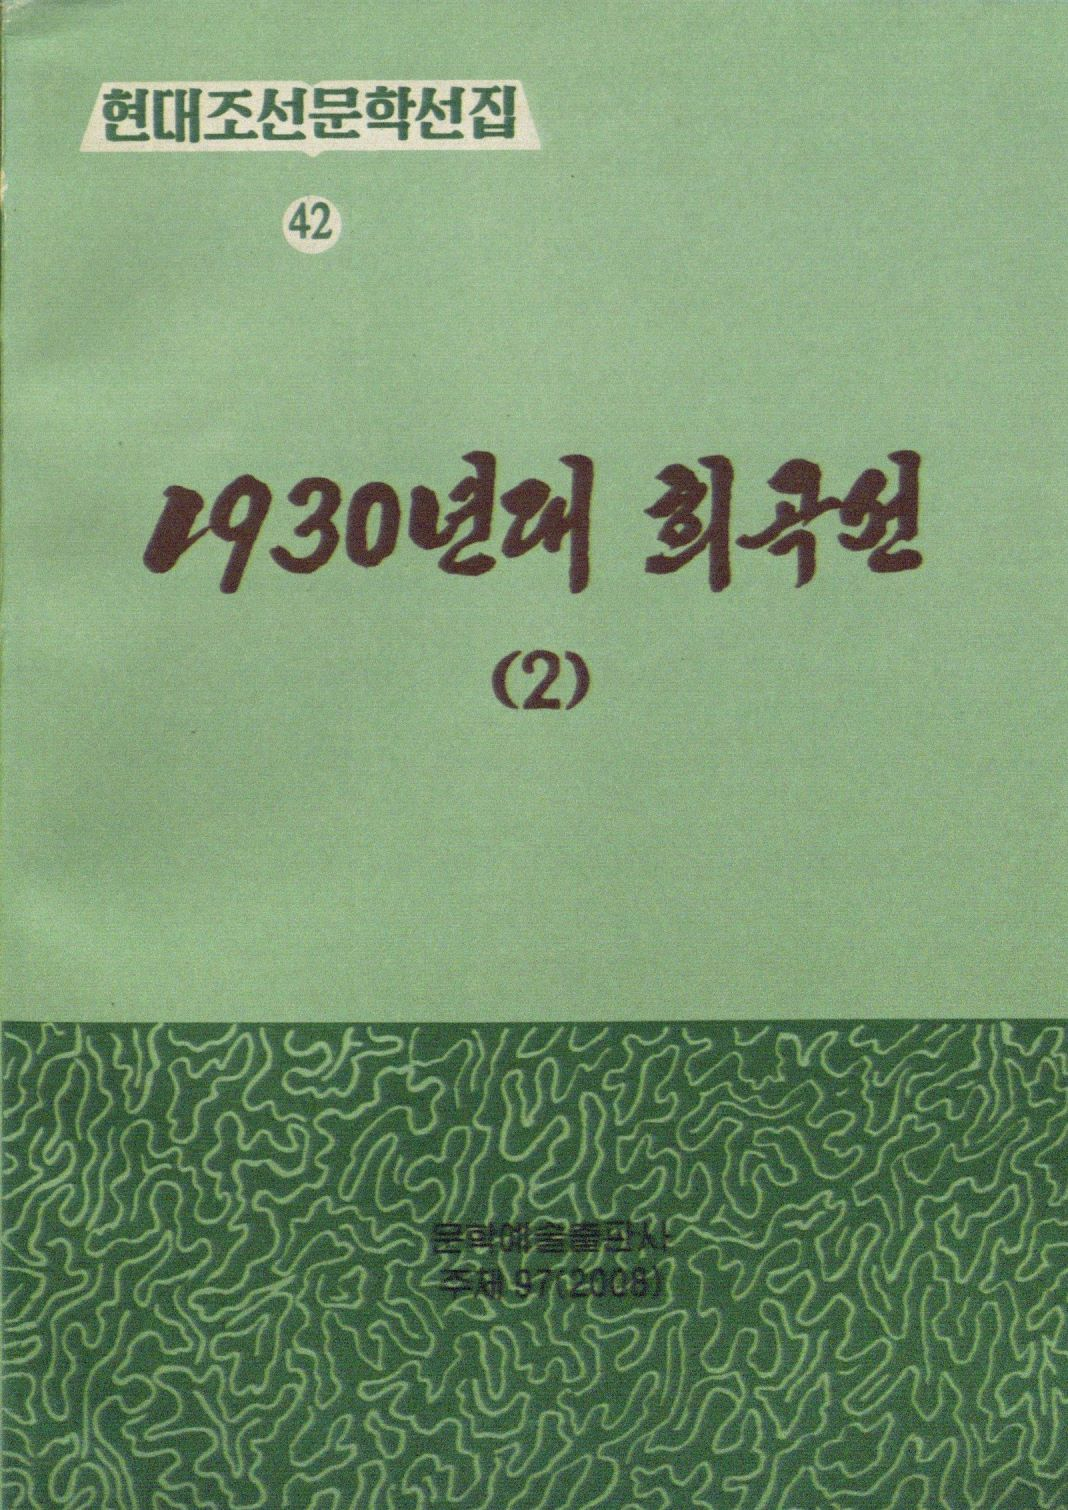 title page of 1930년대 희곡선 2